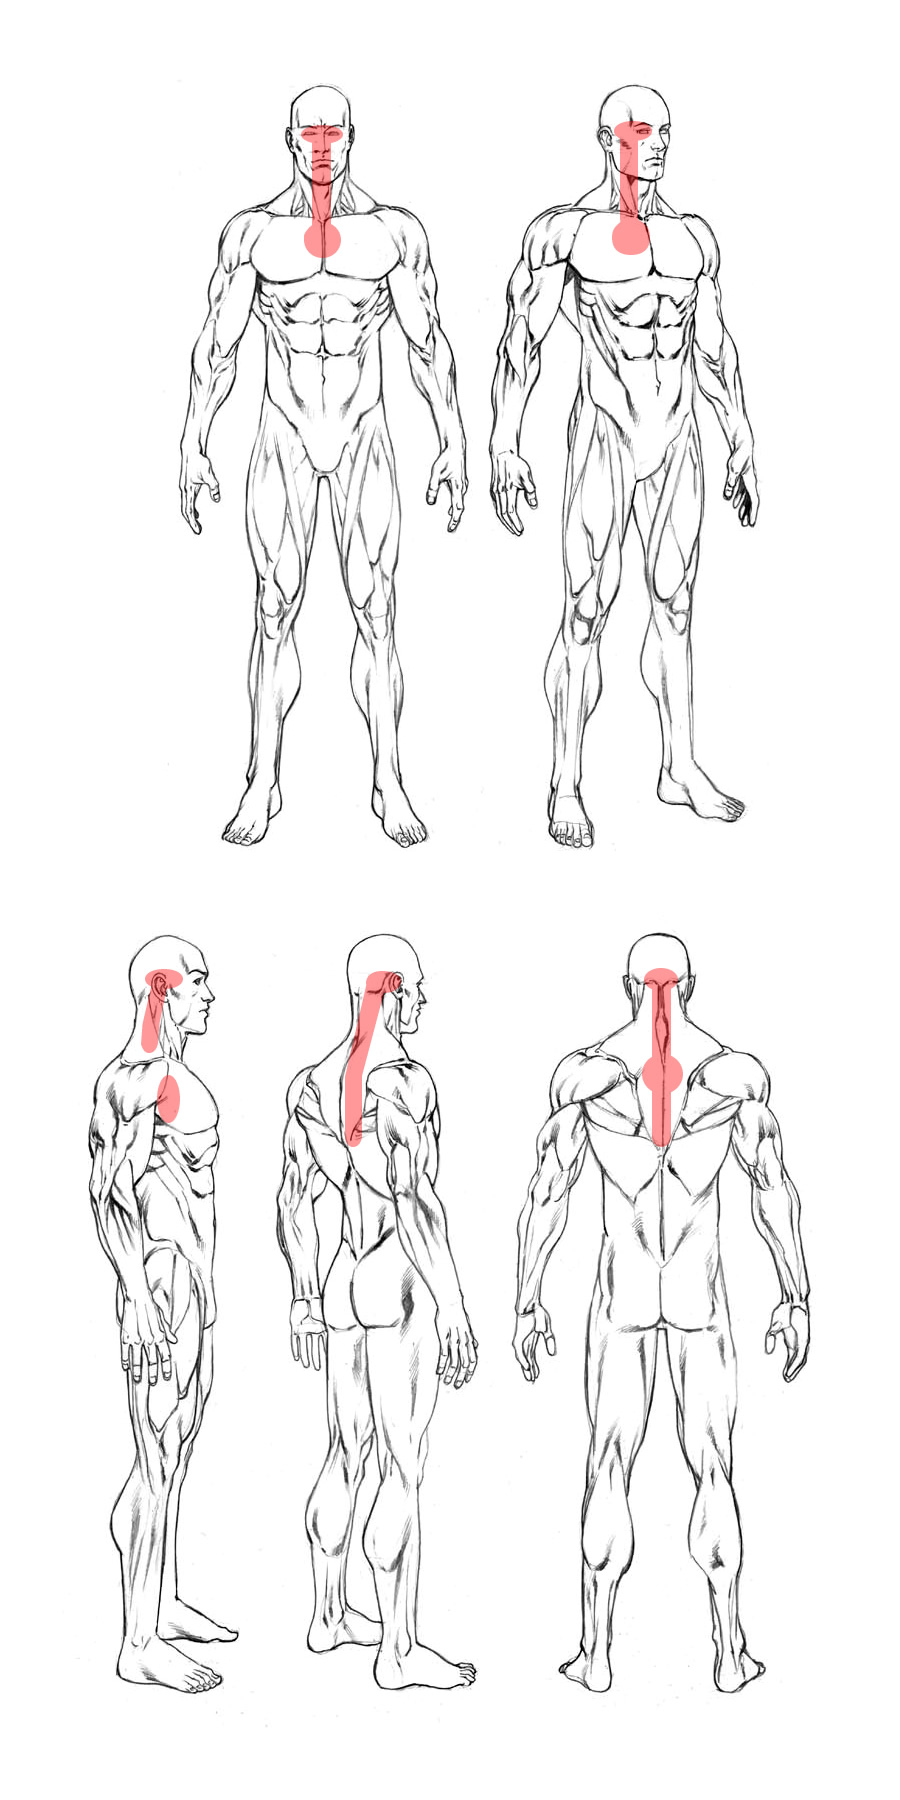 target areas on different body angles